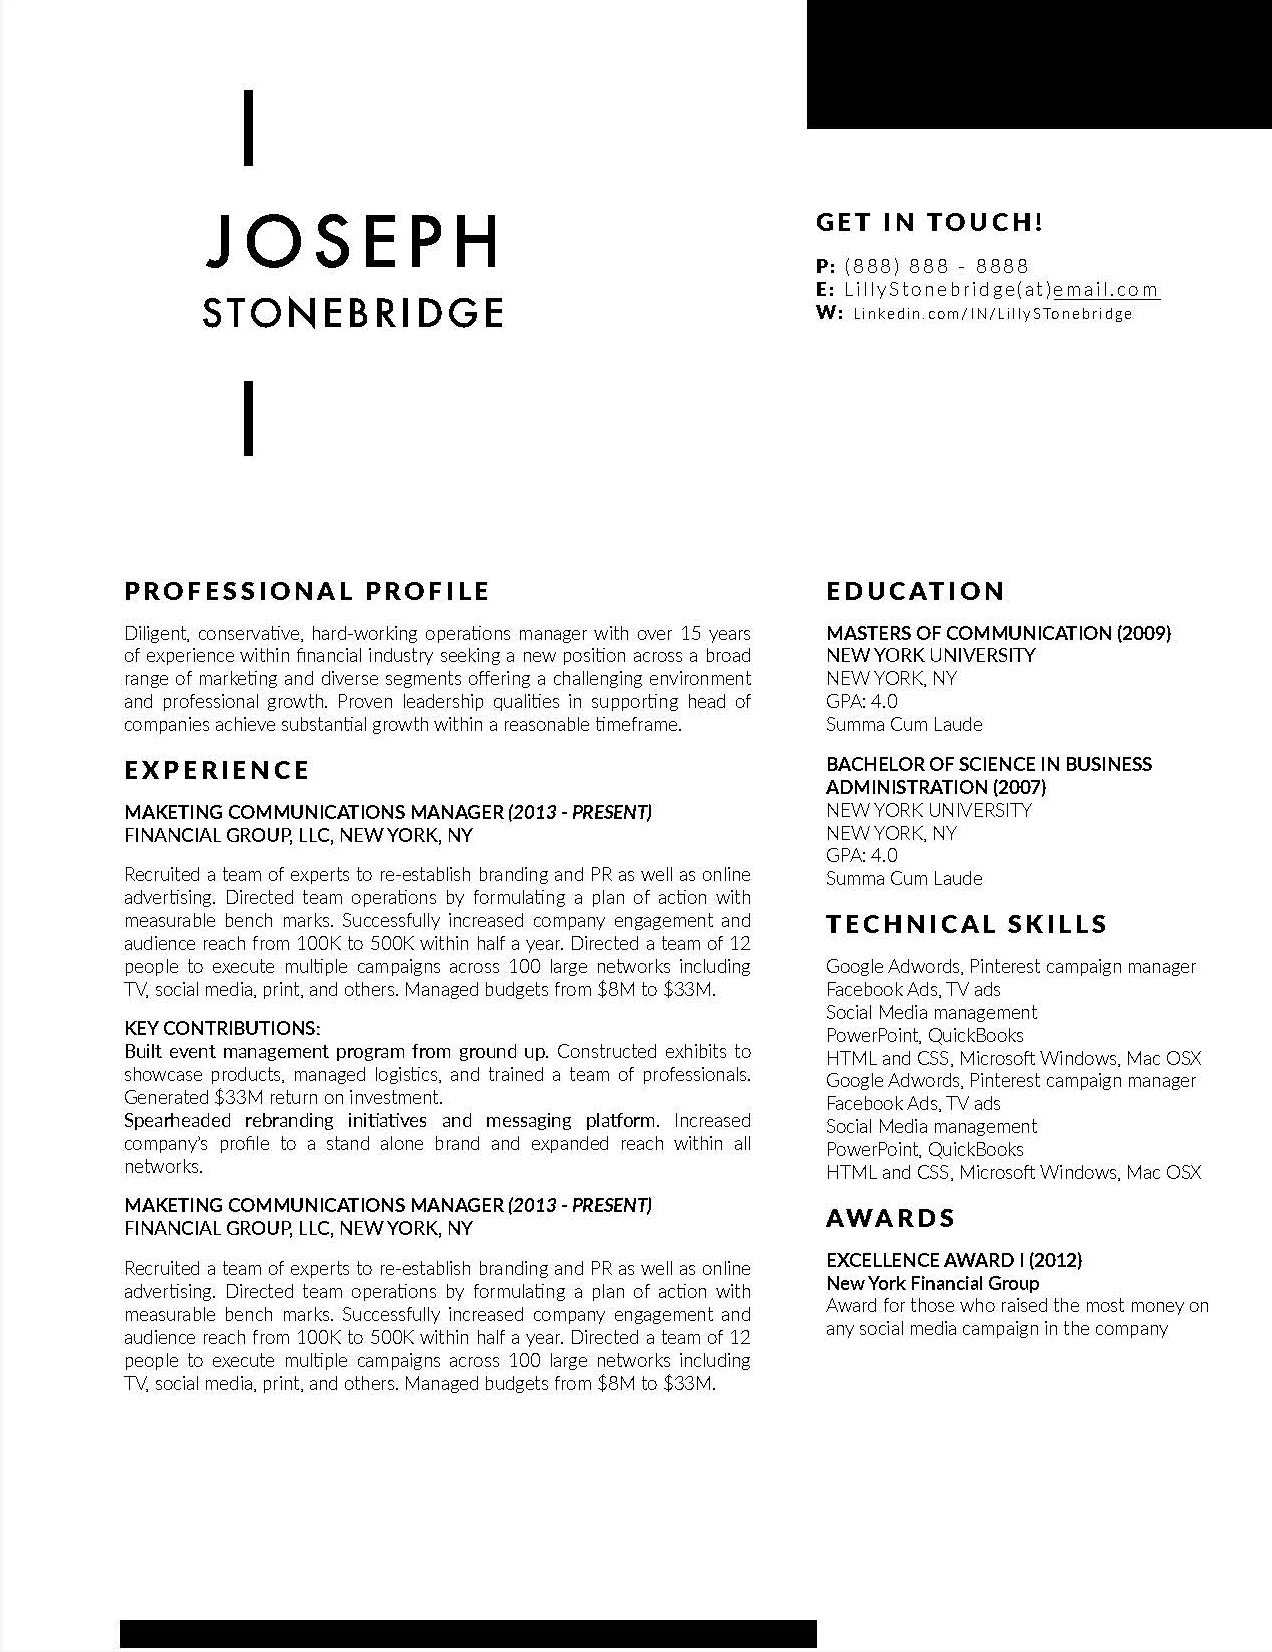 Joseph Stonebridge - Downloadable Resume + Cover Template and Cover Letter Template for Microsoft Word and Apple Pages. This cover letter template is perfect for anyone in the fashion field. The template's design is a modern, unique, colorful, and professional. WE SWEAT THE DETAILS, SO YOU DON'T HAVE TO Stand Out Shop resume templates for Microsoft Word and Apple Pages will help you design a modern and professional resume in minutes! Simply download, open in Microsoft Word or Apple Pages, and input your resume's information. Increase your chances of landing your dream job with a job winning, modern, simple, and scannable resume template for Microsoft Word and Apple Pages. Creating a resume shouldn't suck Simply download a resume template from Stand Out Shop, enter your information in Microsoft Word or Apple Pages and get a beautifully formatted resume in seconds. Create a unique and vivid resume in minutes. Make an impressive resume. Customize your own layout in Microsoft Word or Apple Pages and introduce yourself in an impressive way. You can download your resume at any time. Stand out from other job seekers with a beautiful professional design.